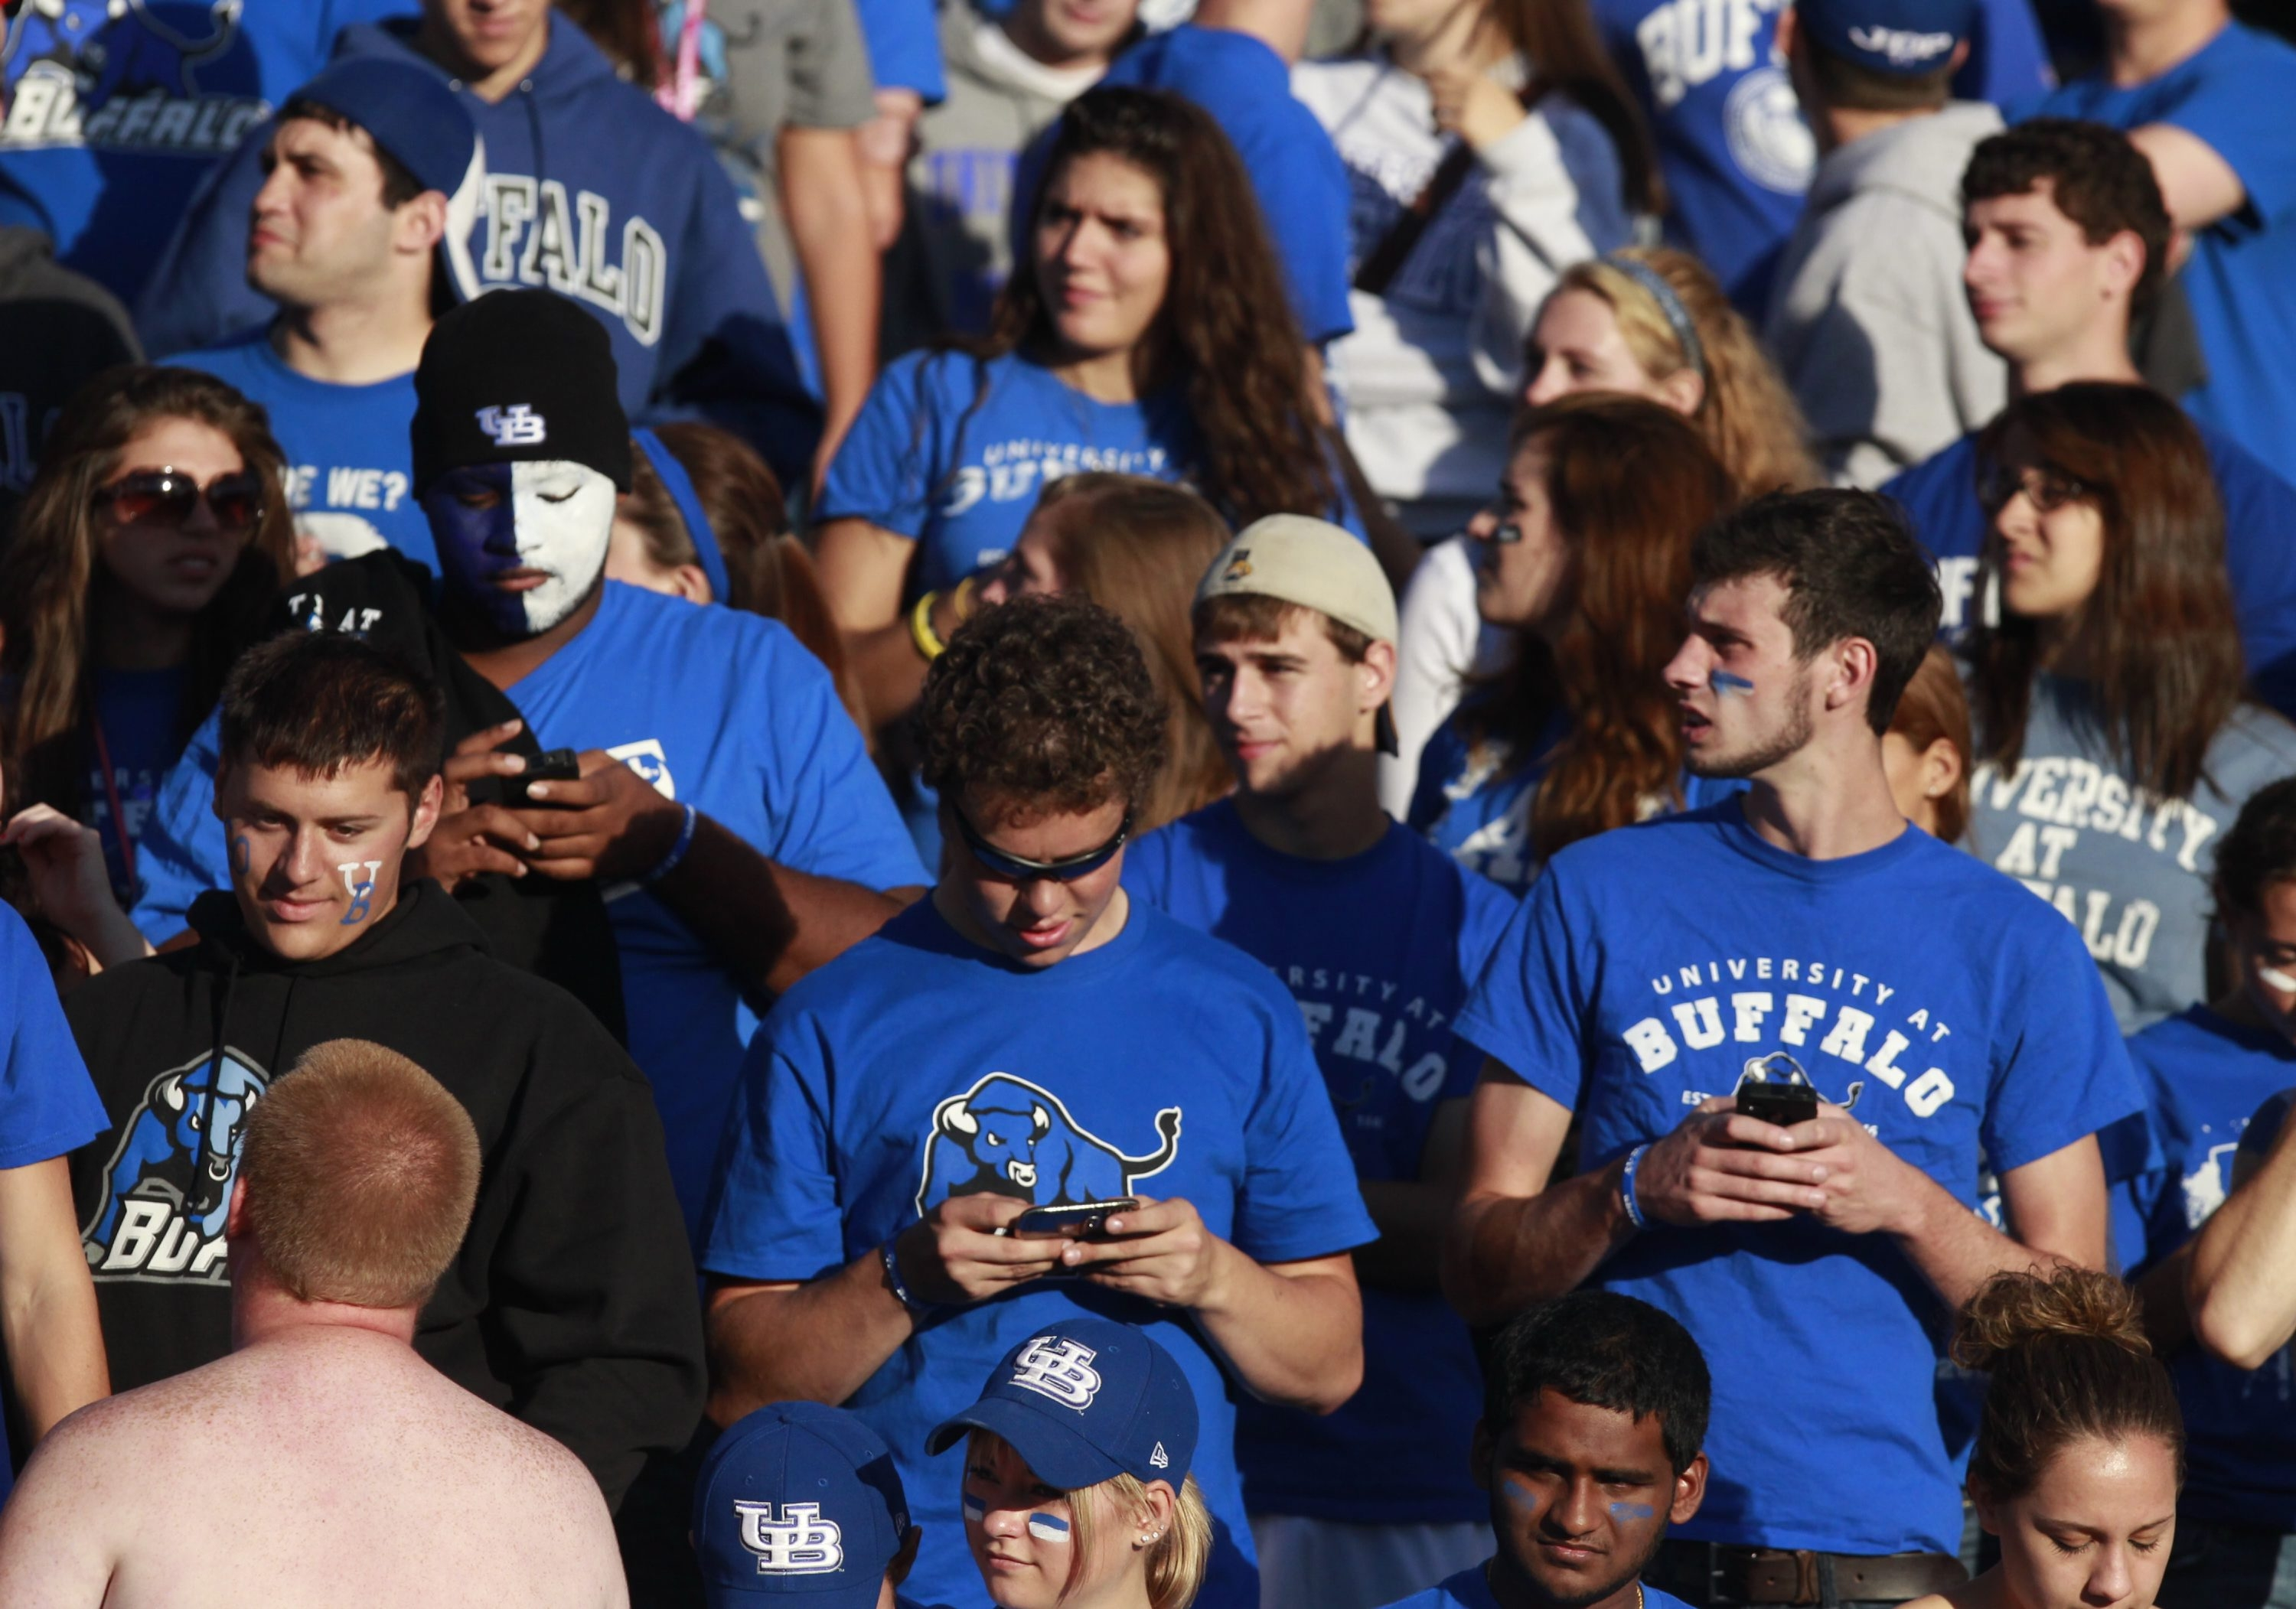 A file photo of UB  fans at a football game at home. (News file photo)